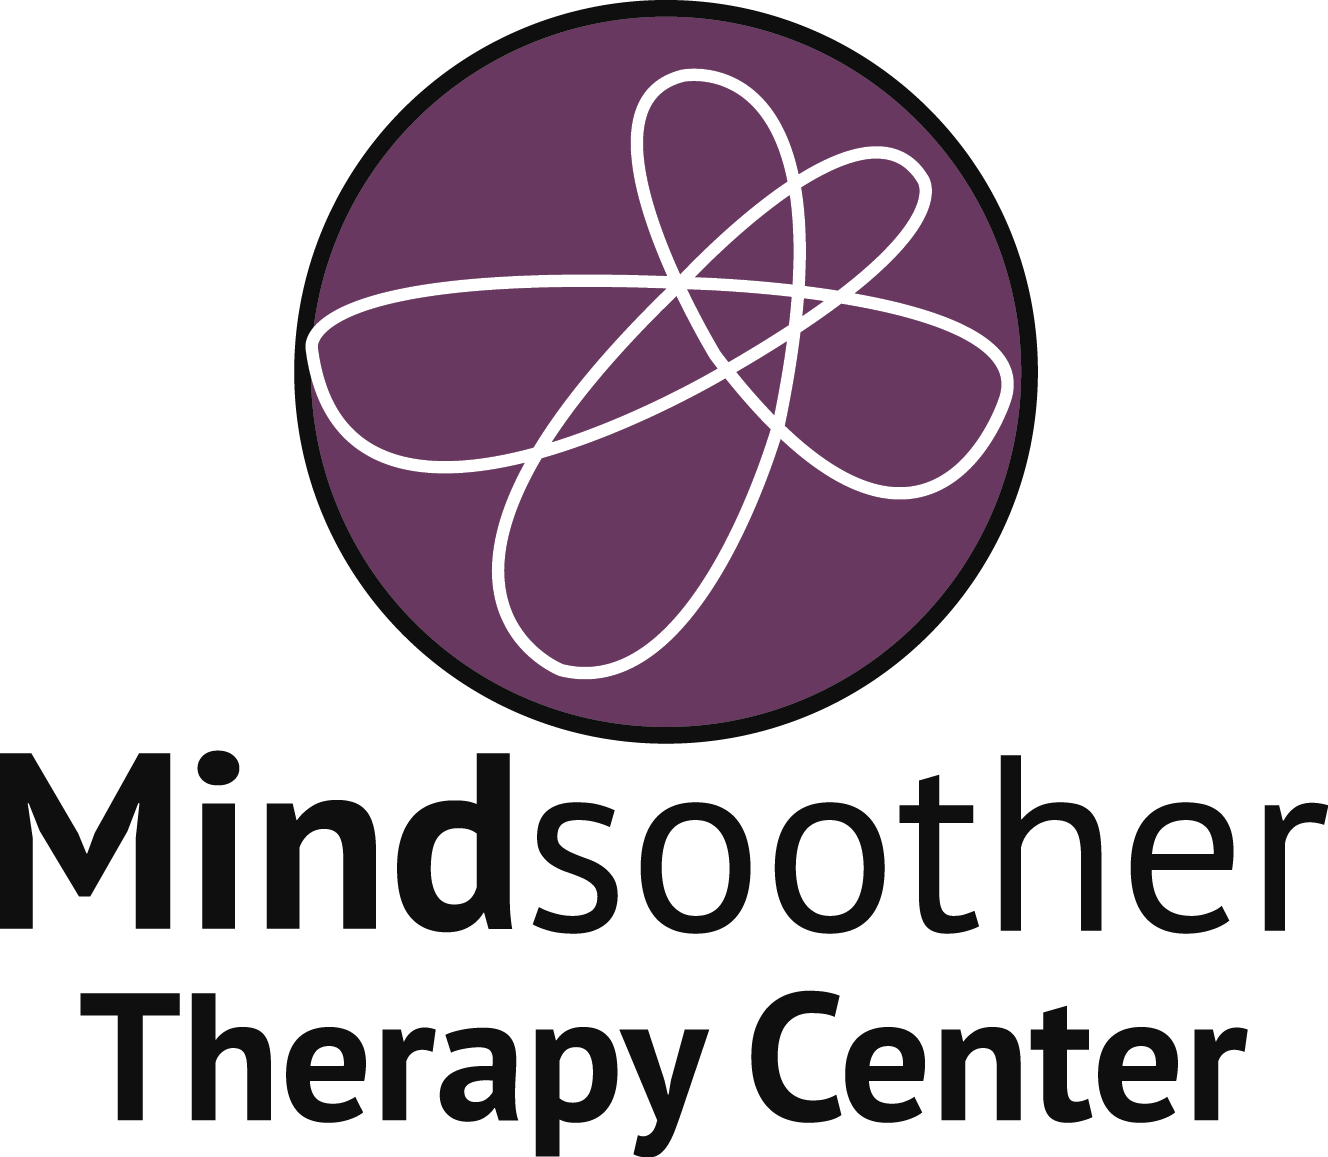 Mindsoother logo after refresh